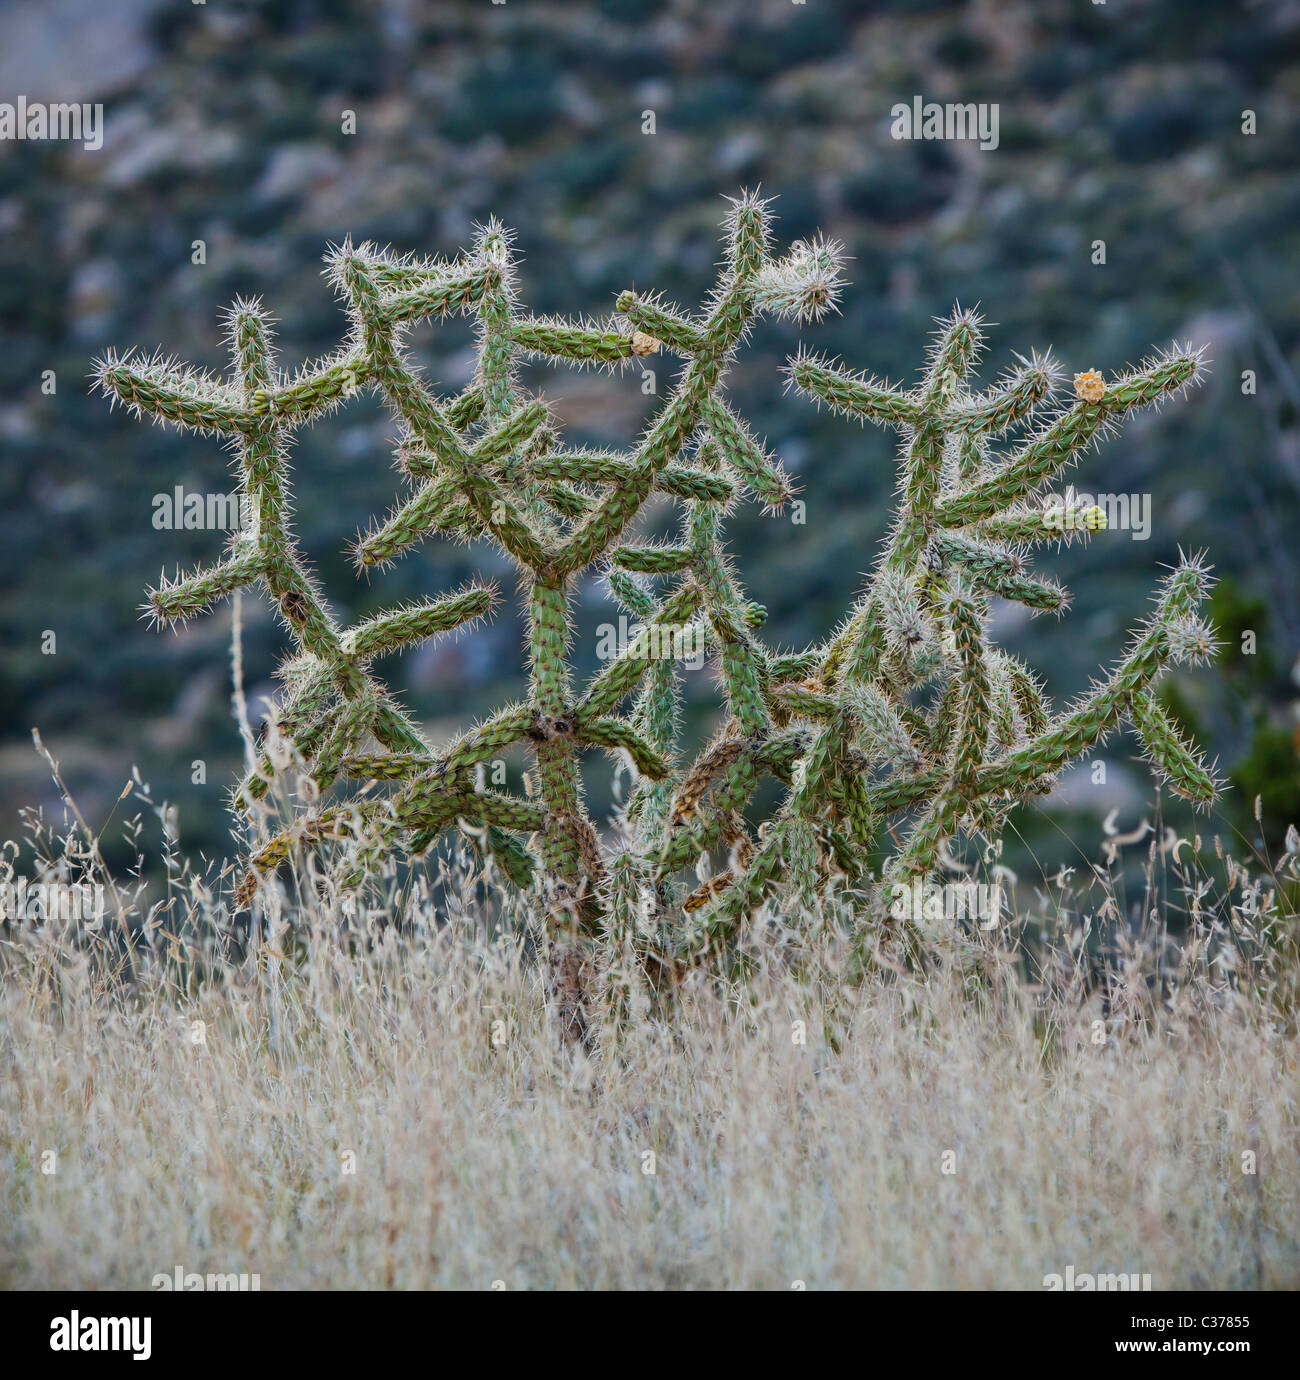 Cholla cactus and other faoilage in the desert foothills of the Sandia mountains, New Mexico, USA. Stock Photo